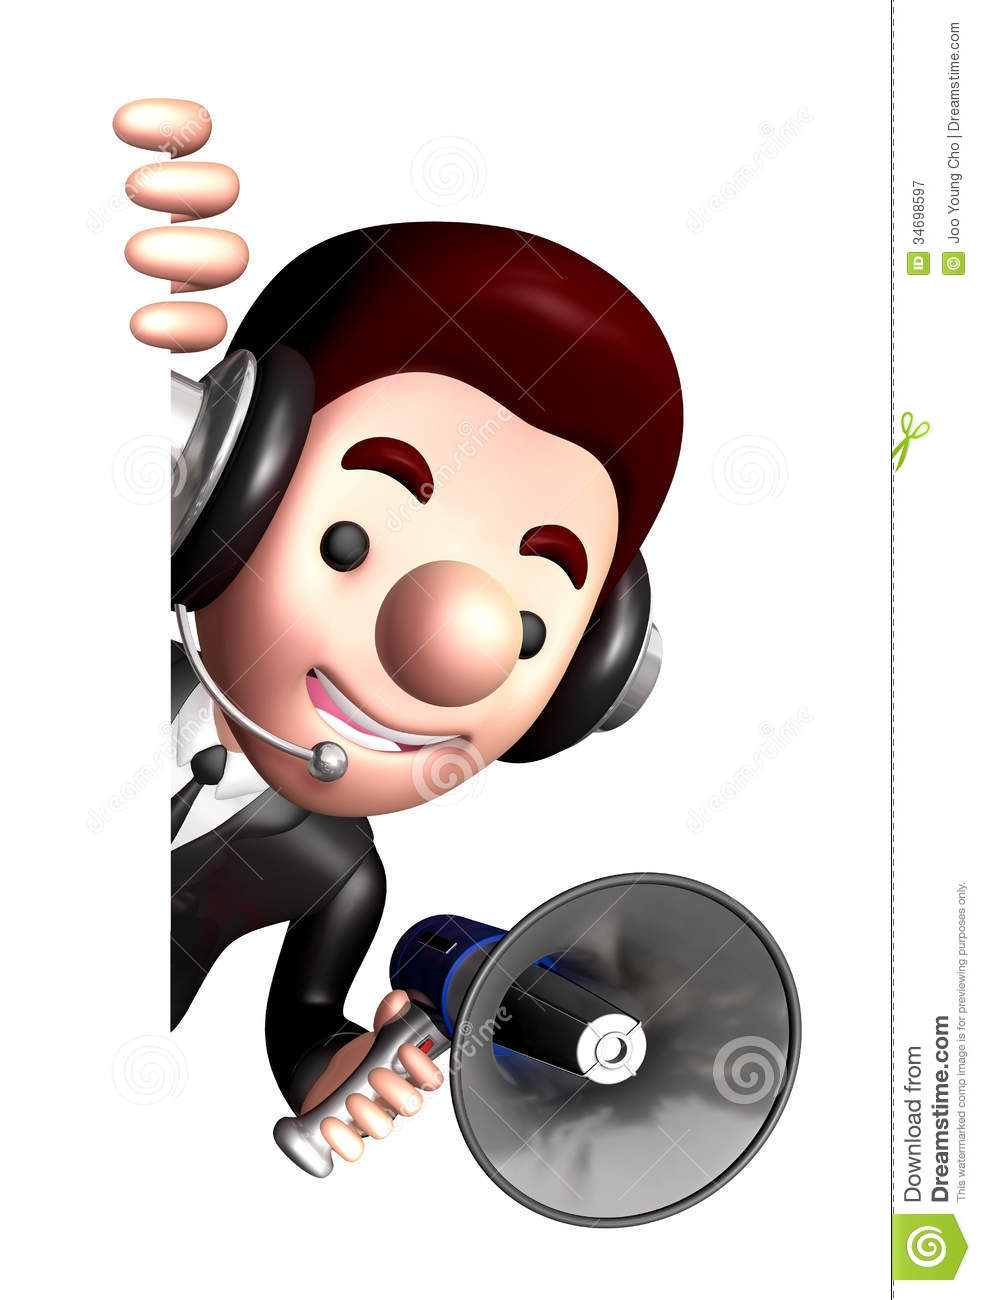 Character Design Job Offer : D business man mascot the hand is holding a loudspeaker